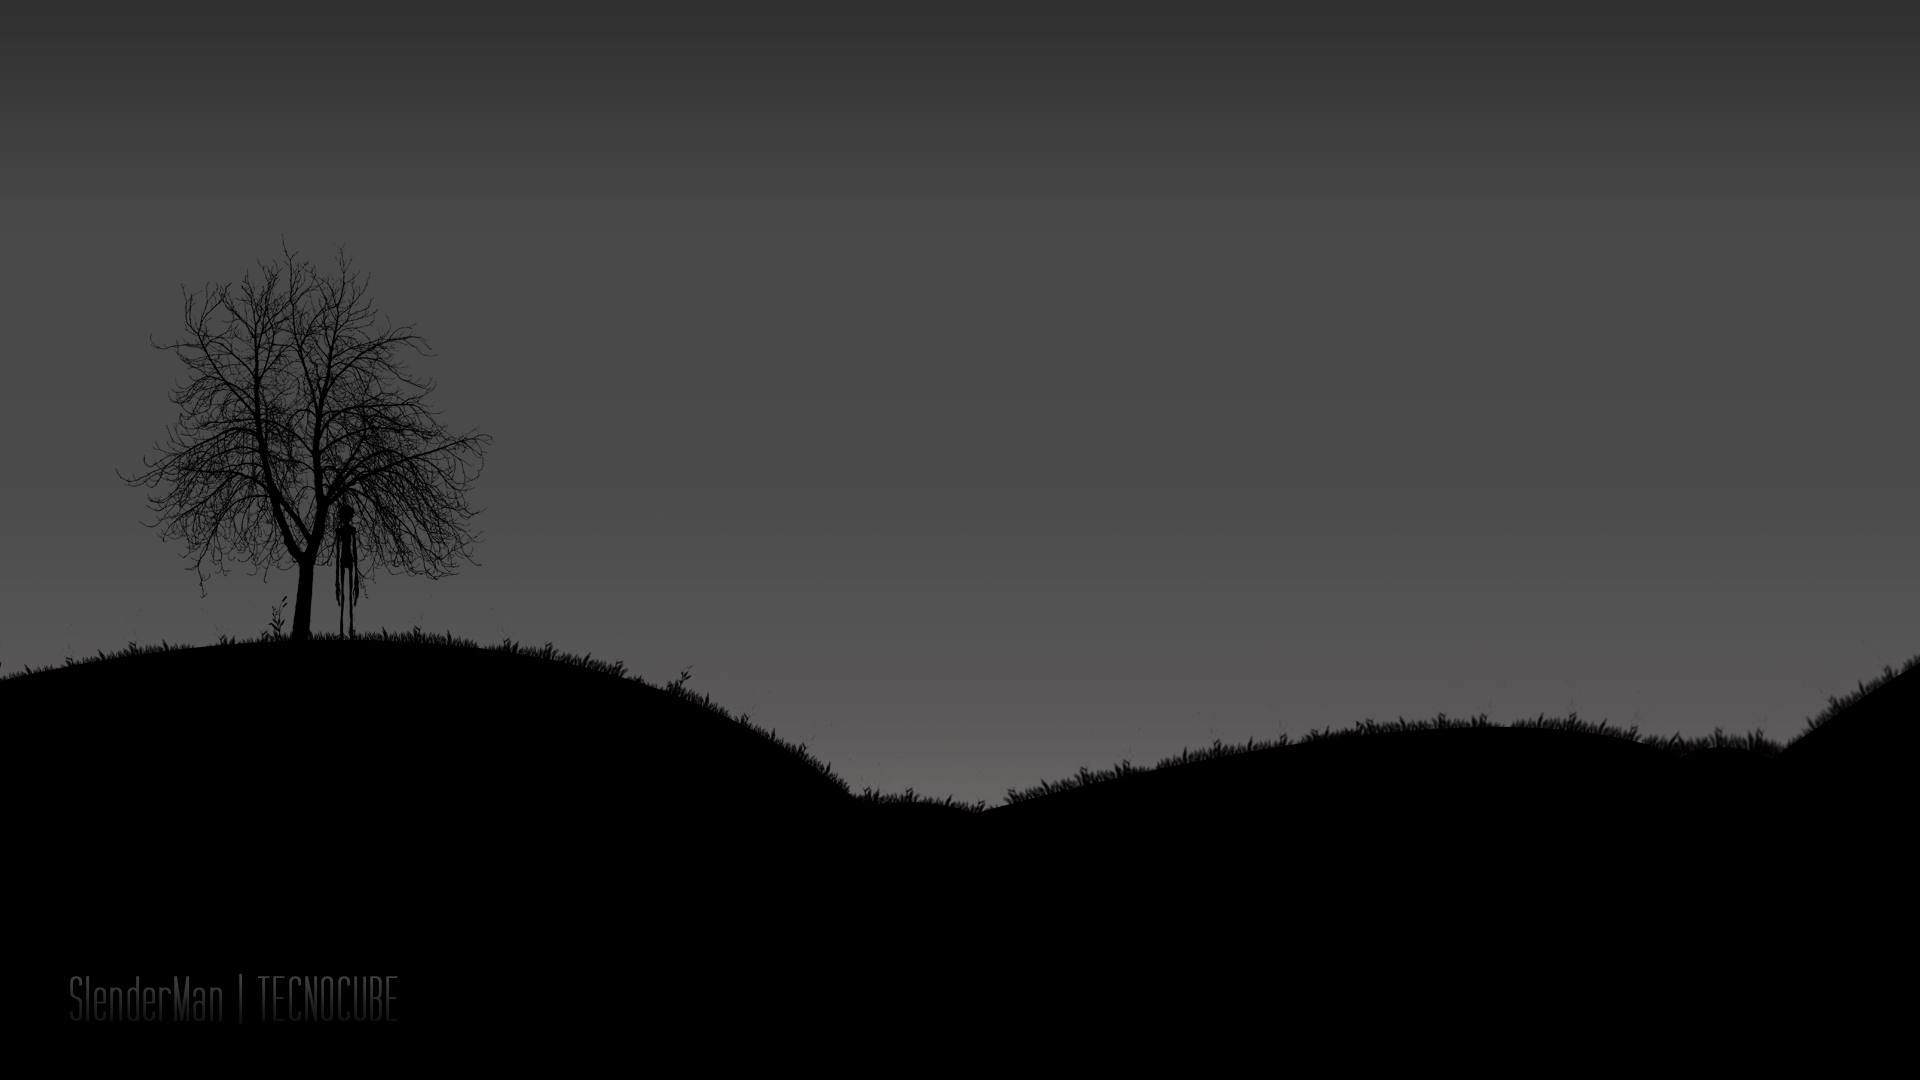 Slenderman silhouette background by TECNOCUBE Slenderman silhouette background by TECNOCUBE